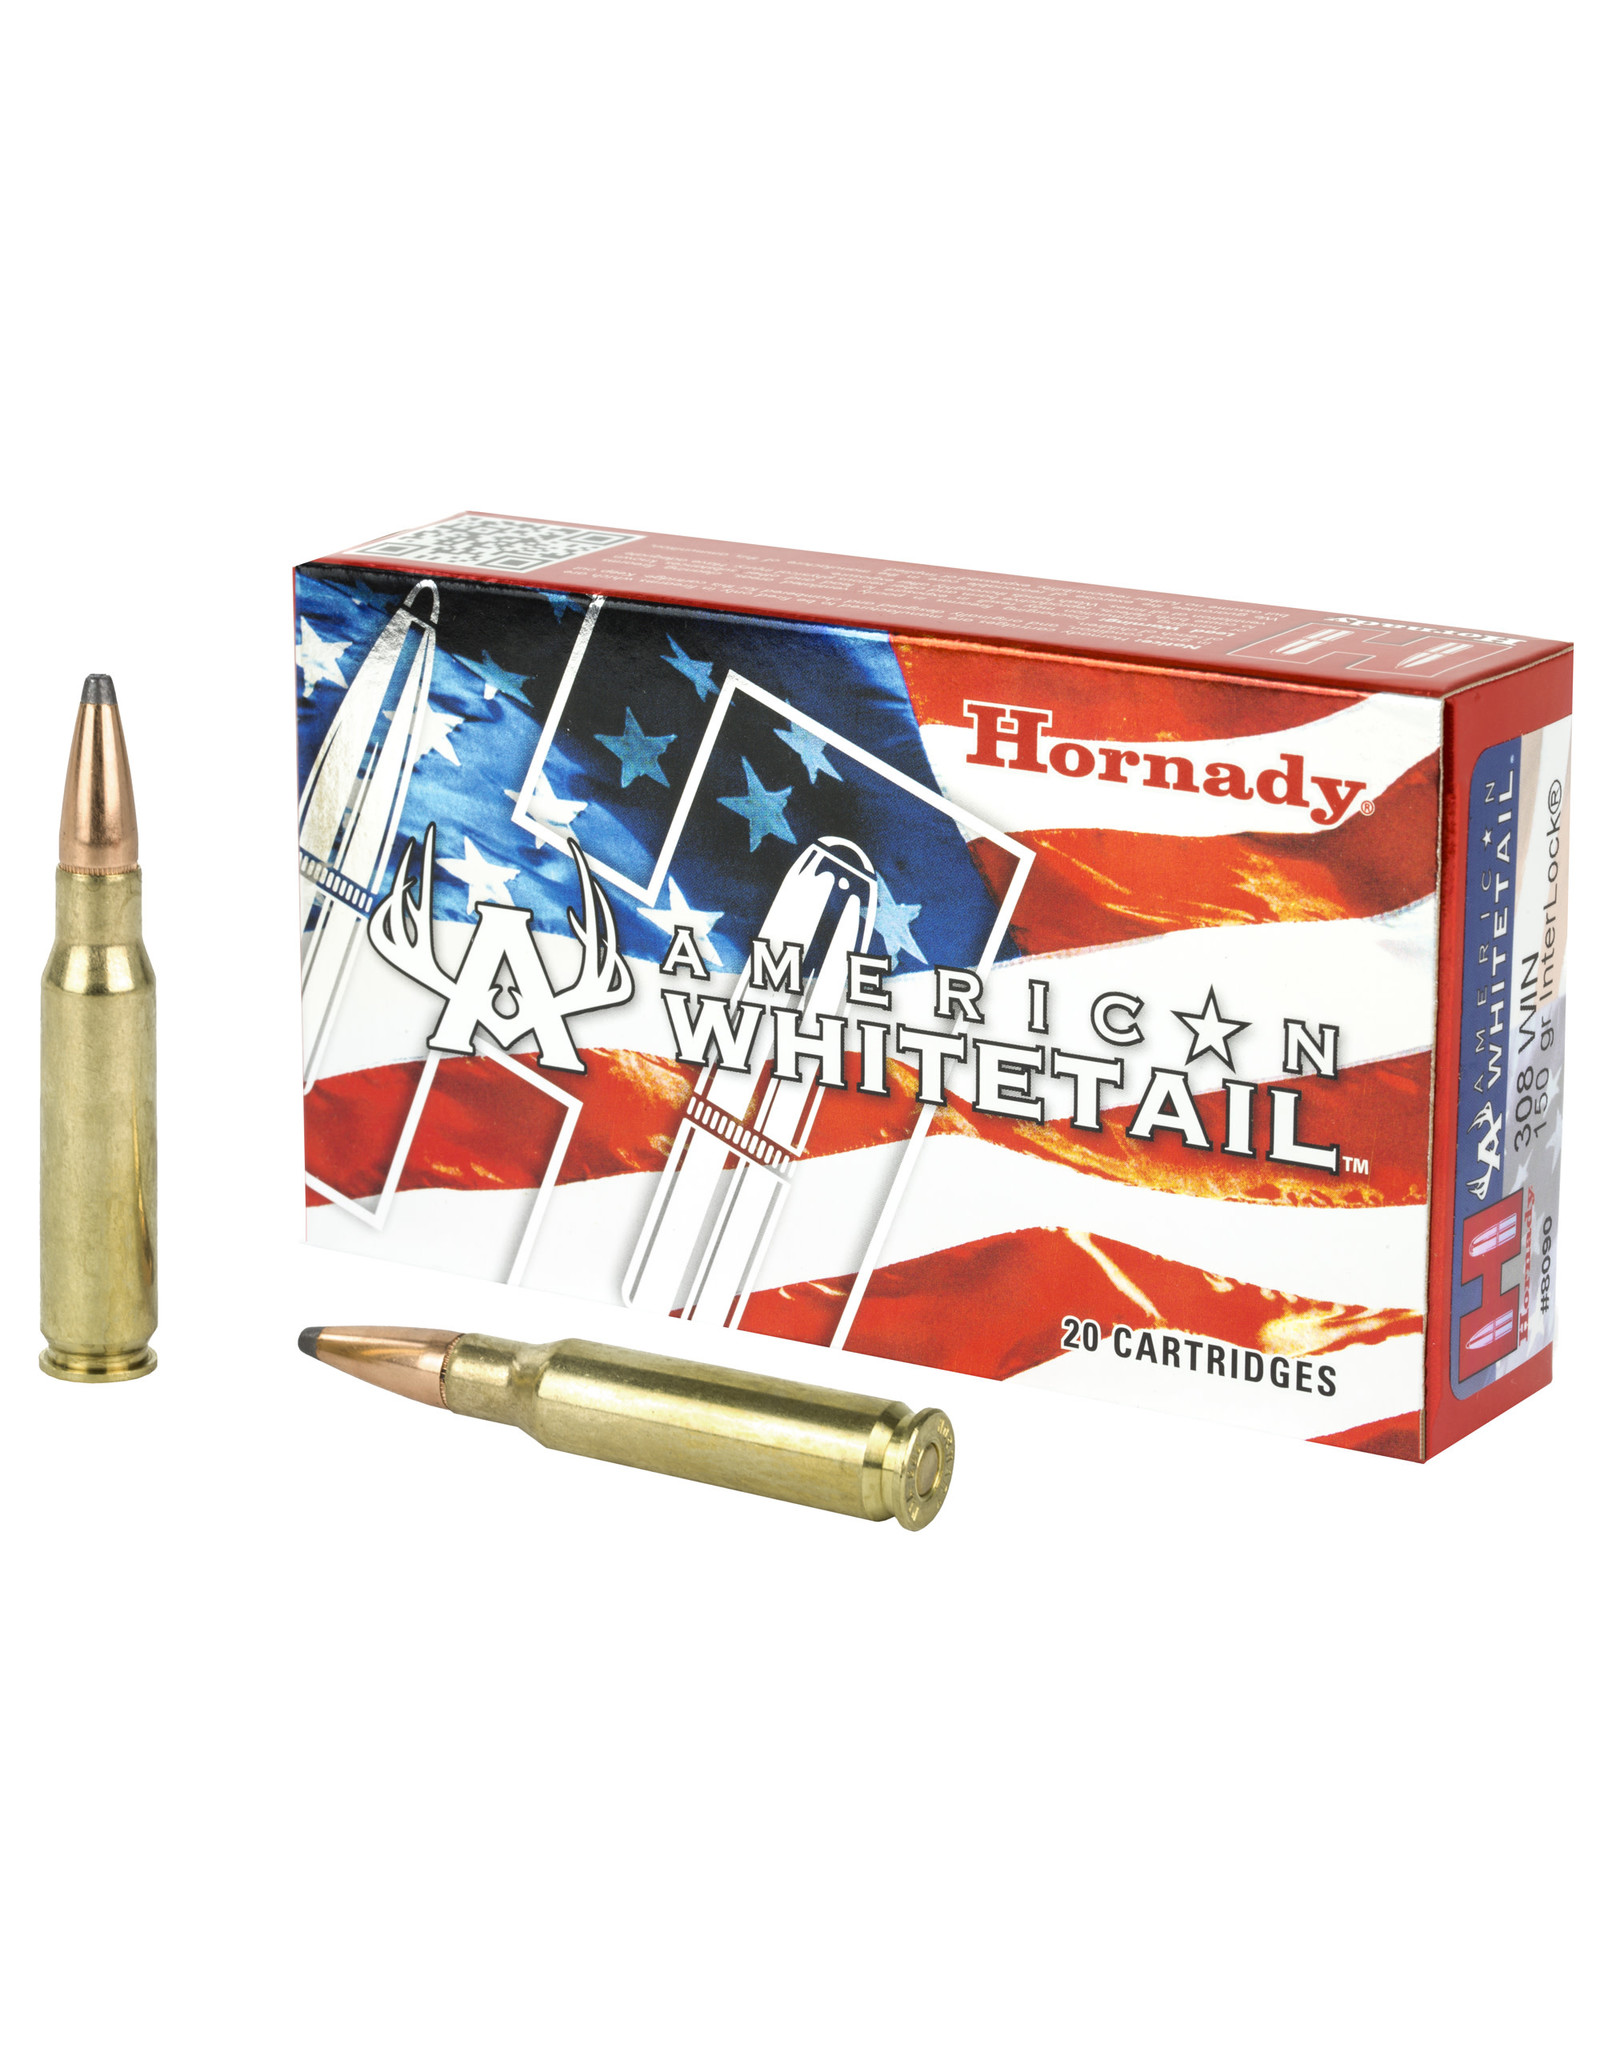 Hornady Hornady - 308 Win - 150gr SP American Whitetail - 20ct